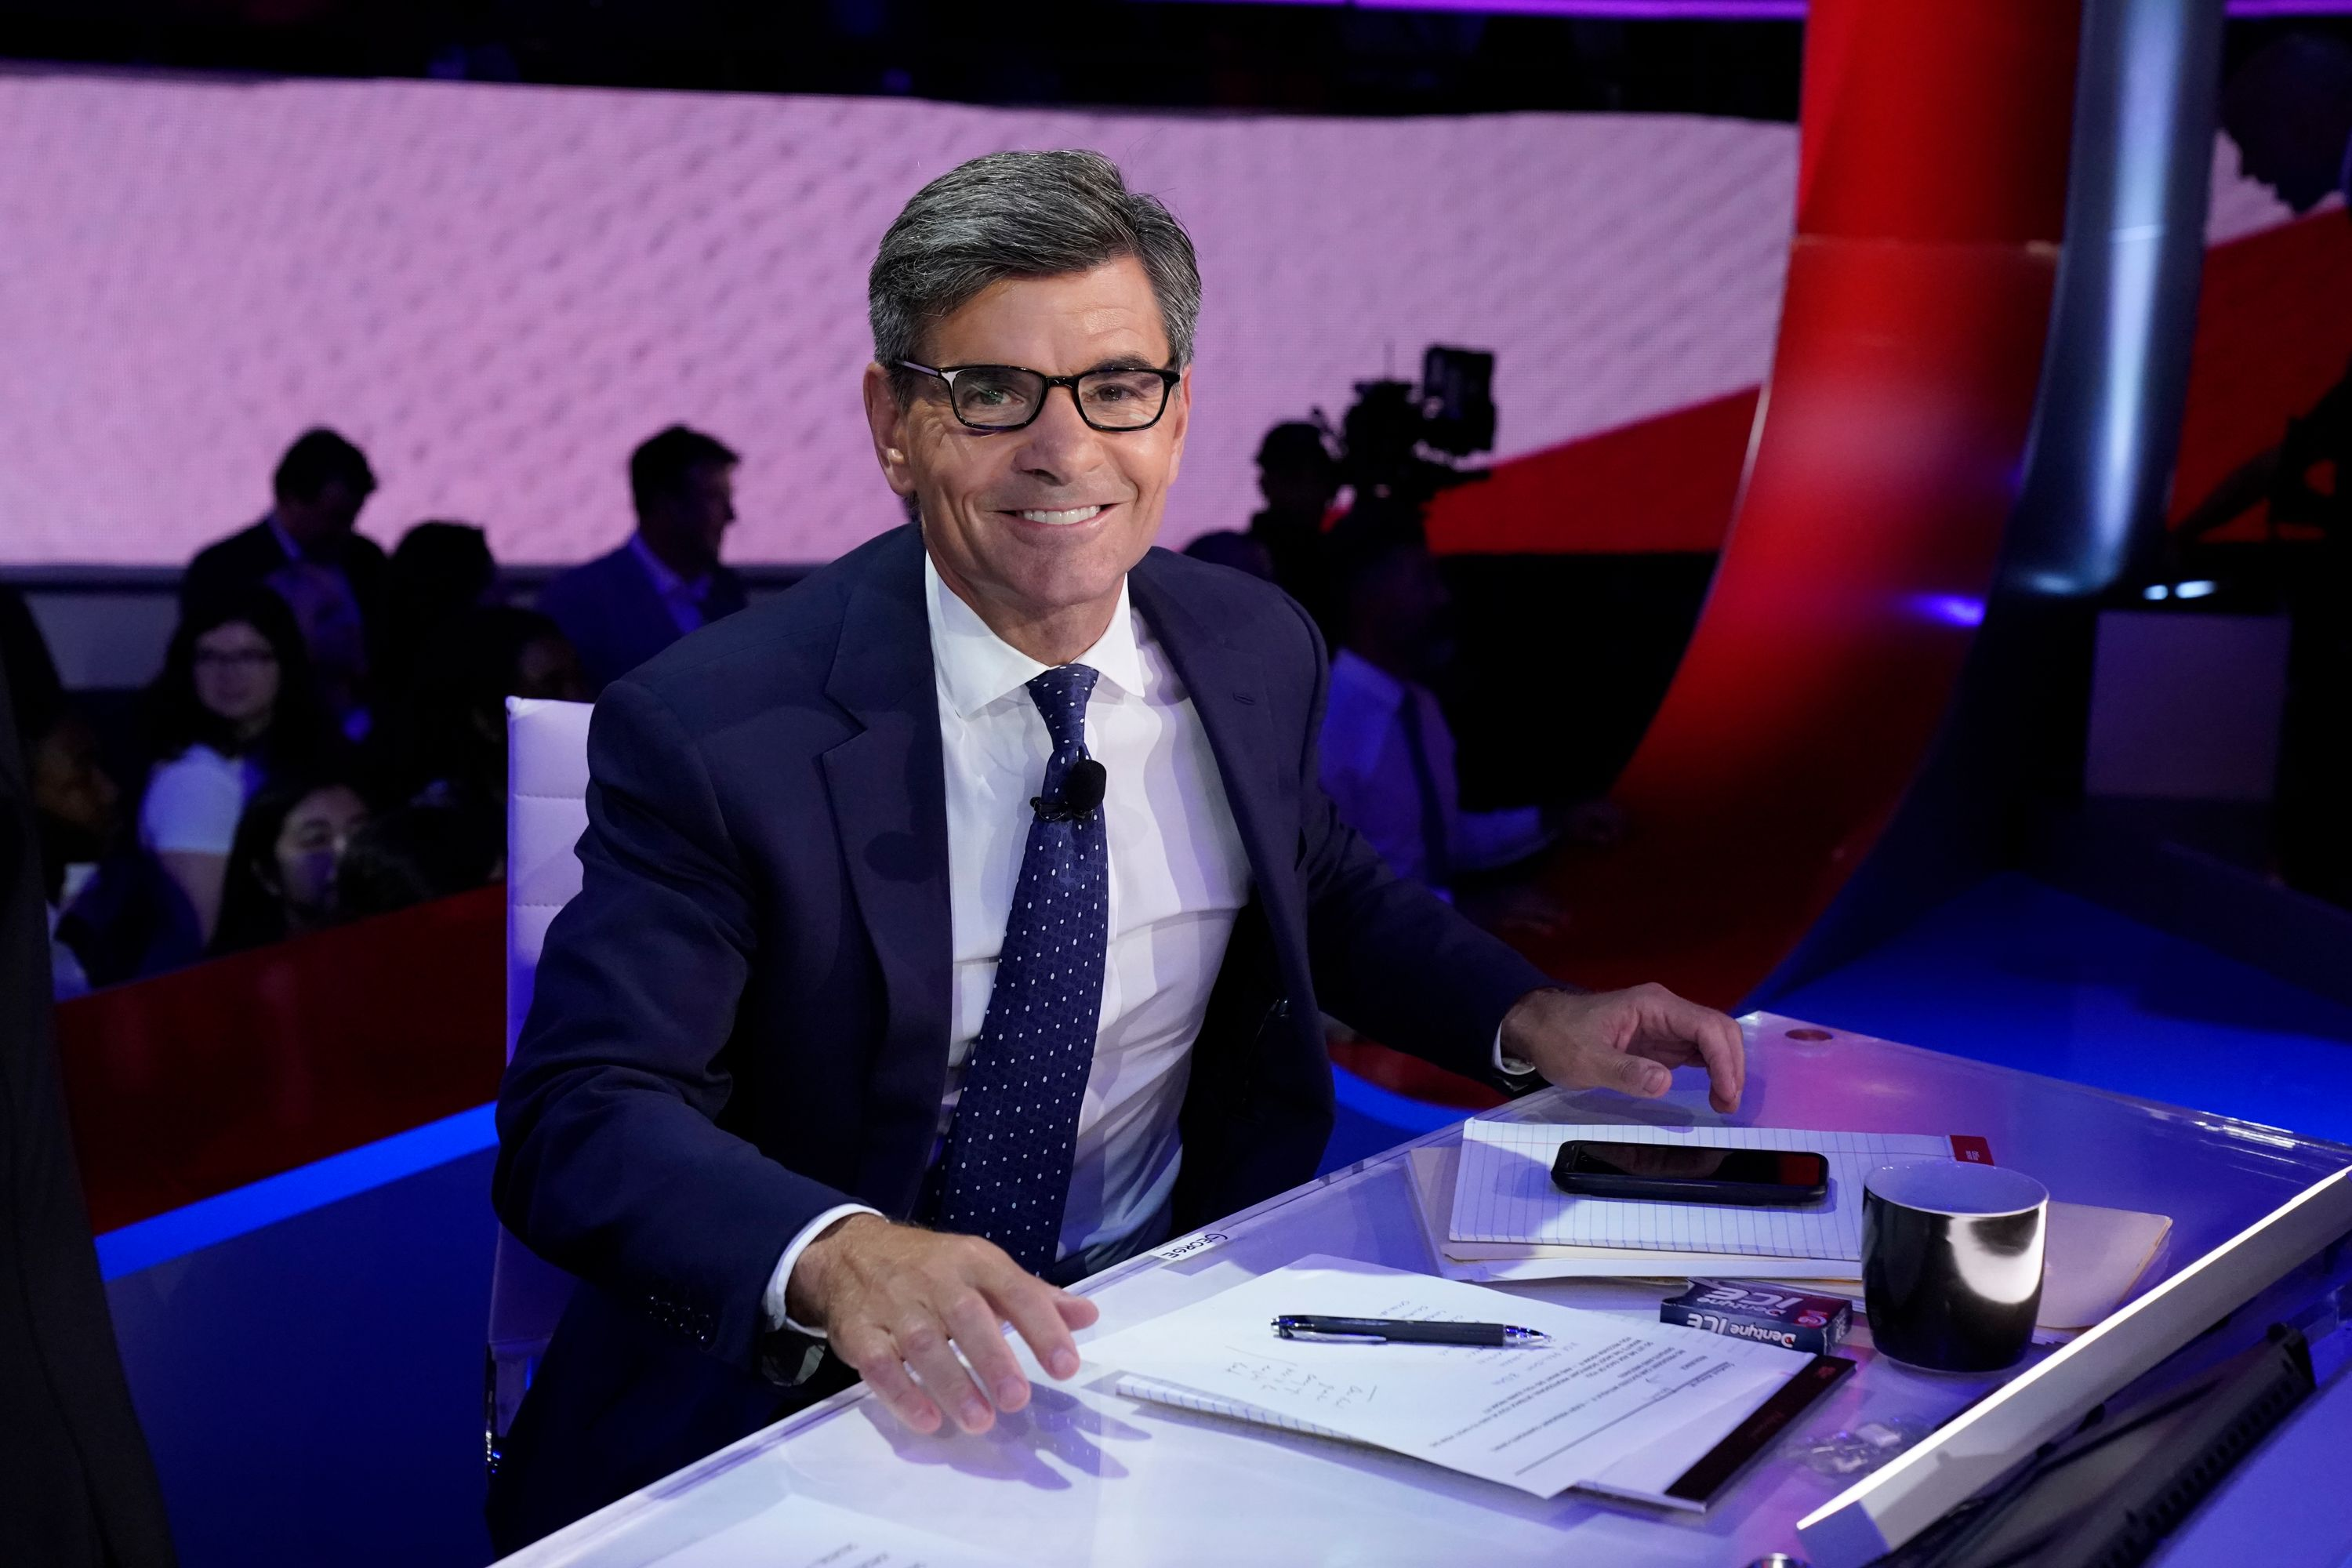 George Stephanopoulos at the Texas Southern University's Health & PE Center in Houston on September 12, 2019 | Photo: Heidi Gutman/Walt Disney Television/Getty Images